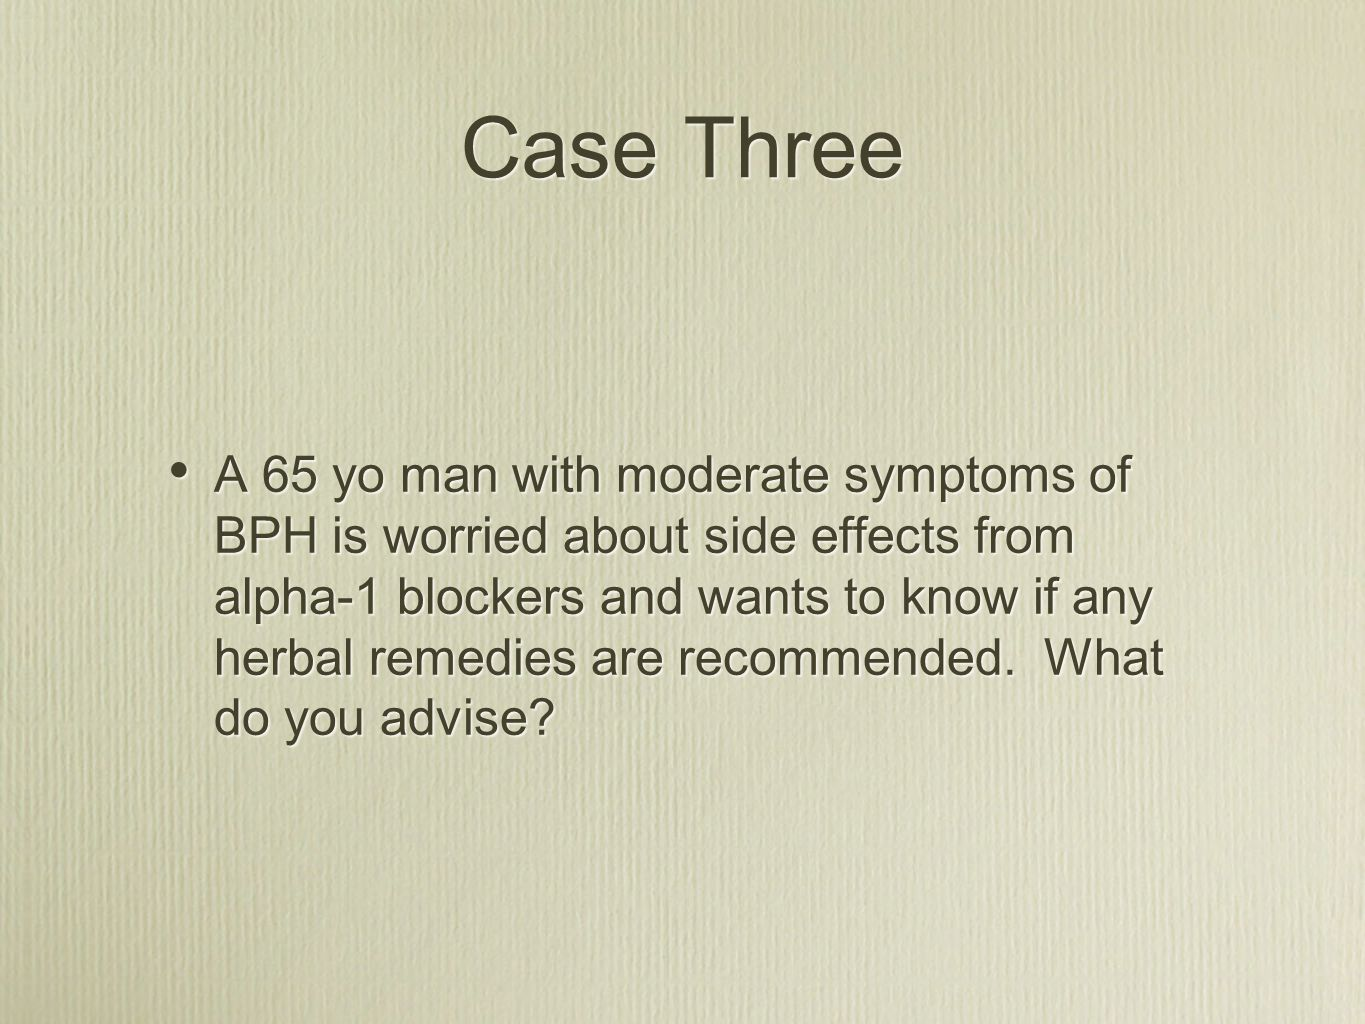 Case Three A 65 yo man with moderate symptoms of BPH is worried about side effects from alpha-1 blockers and wants to know if any herbal remedies are